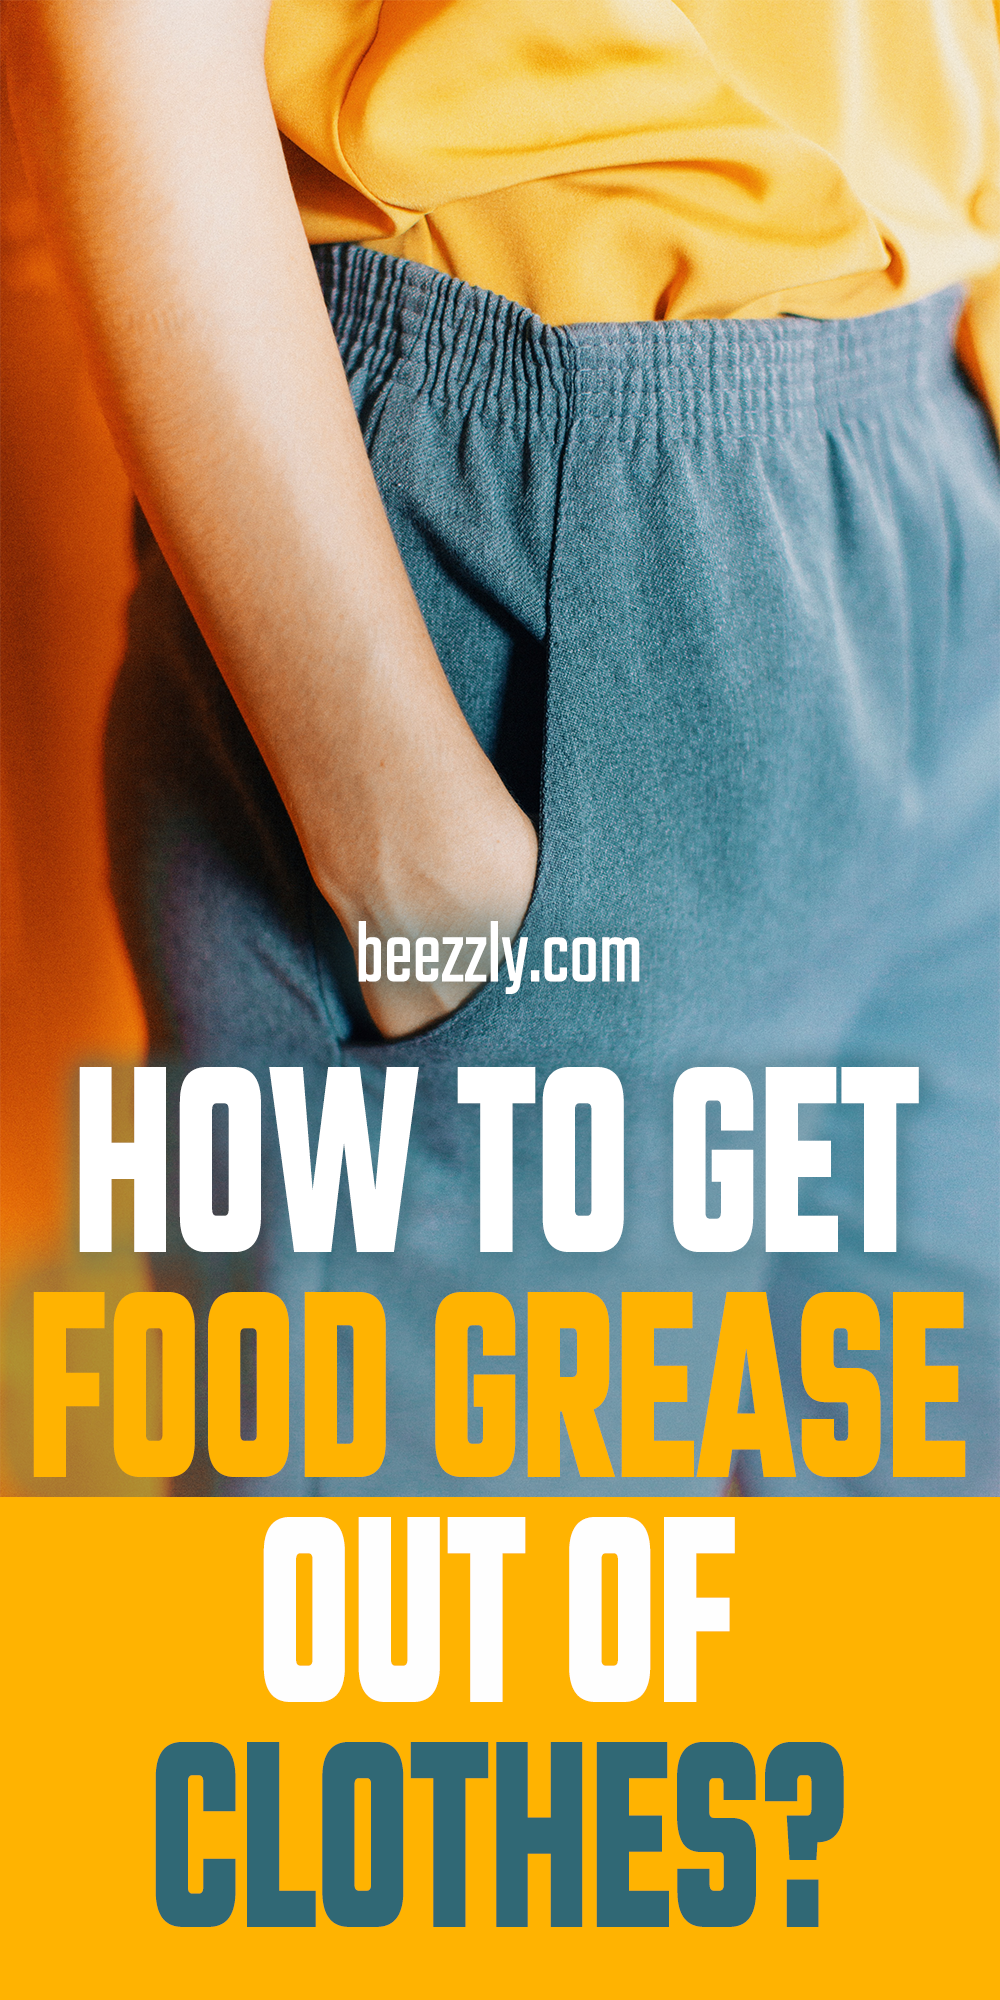 How To Get Food Grease Out Of Clothes Tough Stain Diy Household Tips Remove Grease Stain